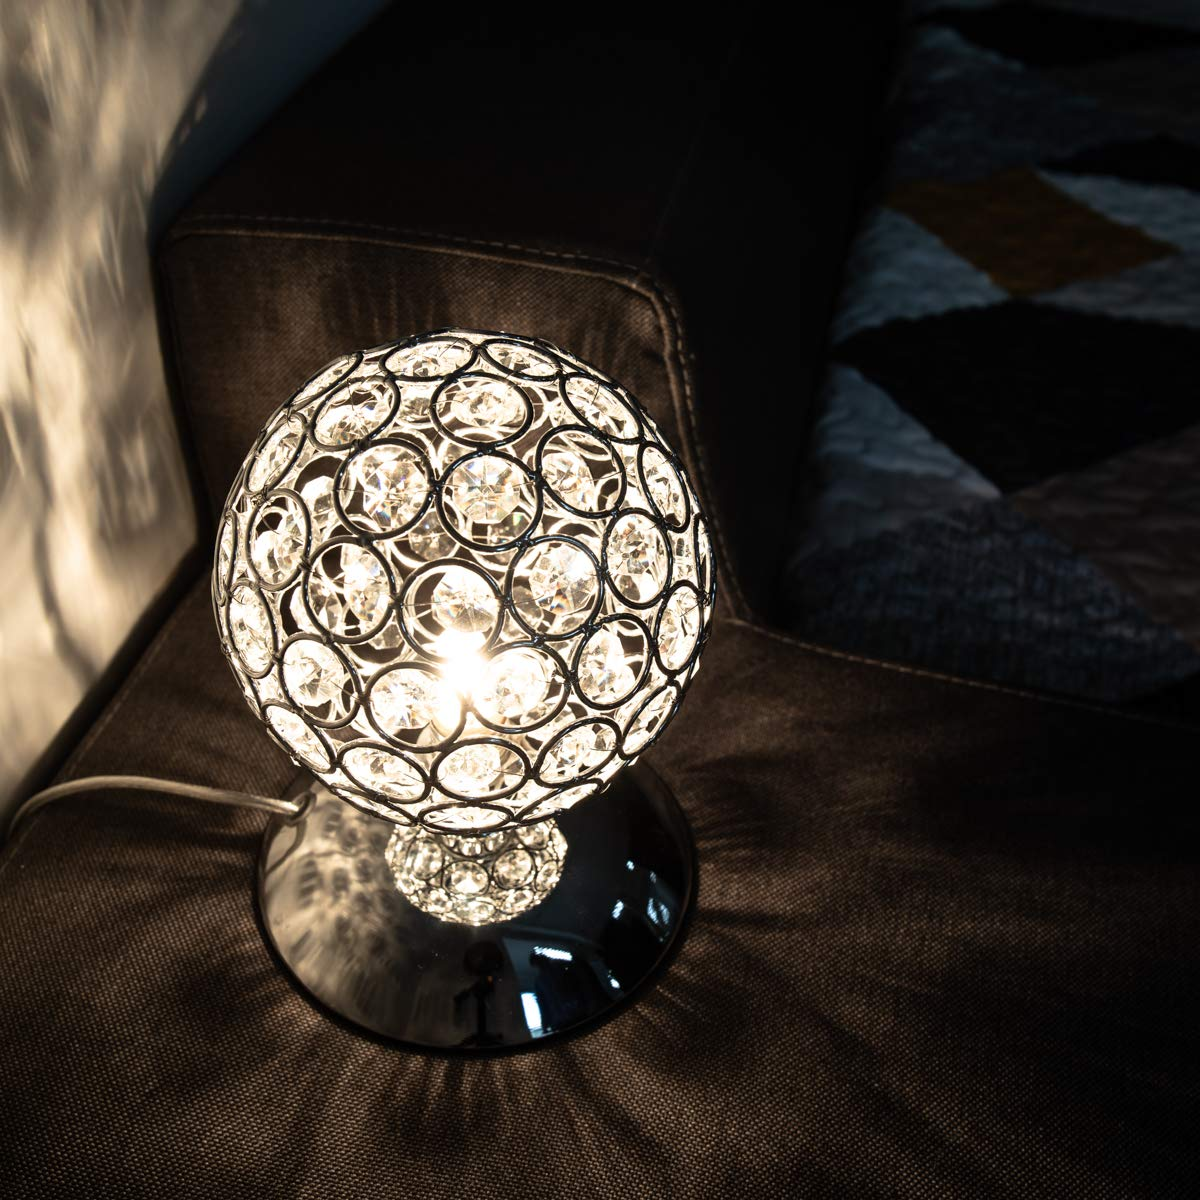 K5 Modern Crystal Table Lamp Night Light Touch Dimmable Led Table Lamp Touch Sensor Bedside Lamp Desktop Decoration with EU plug